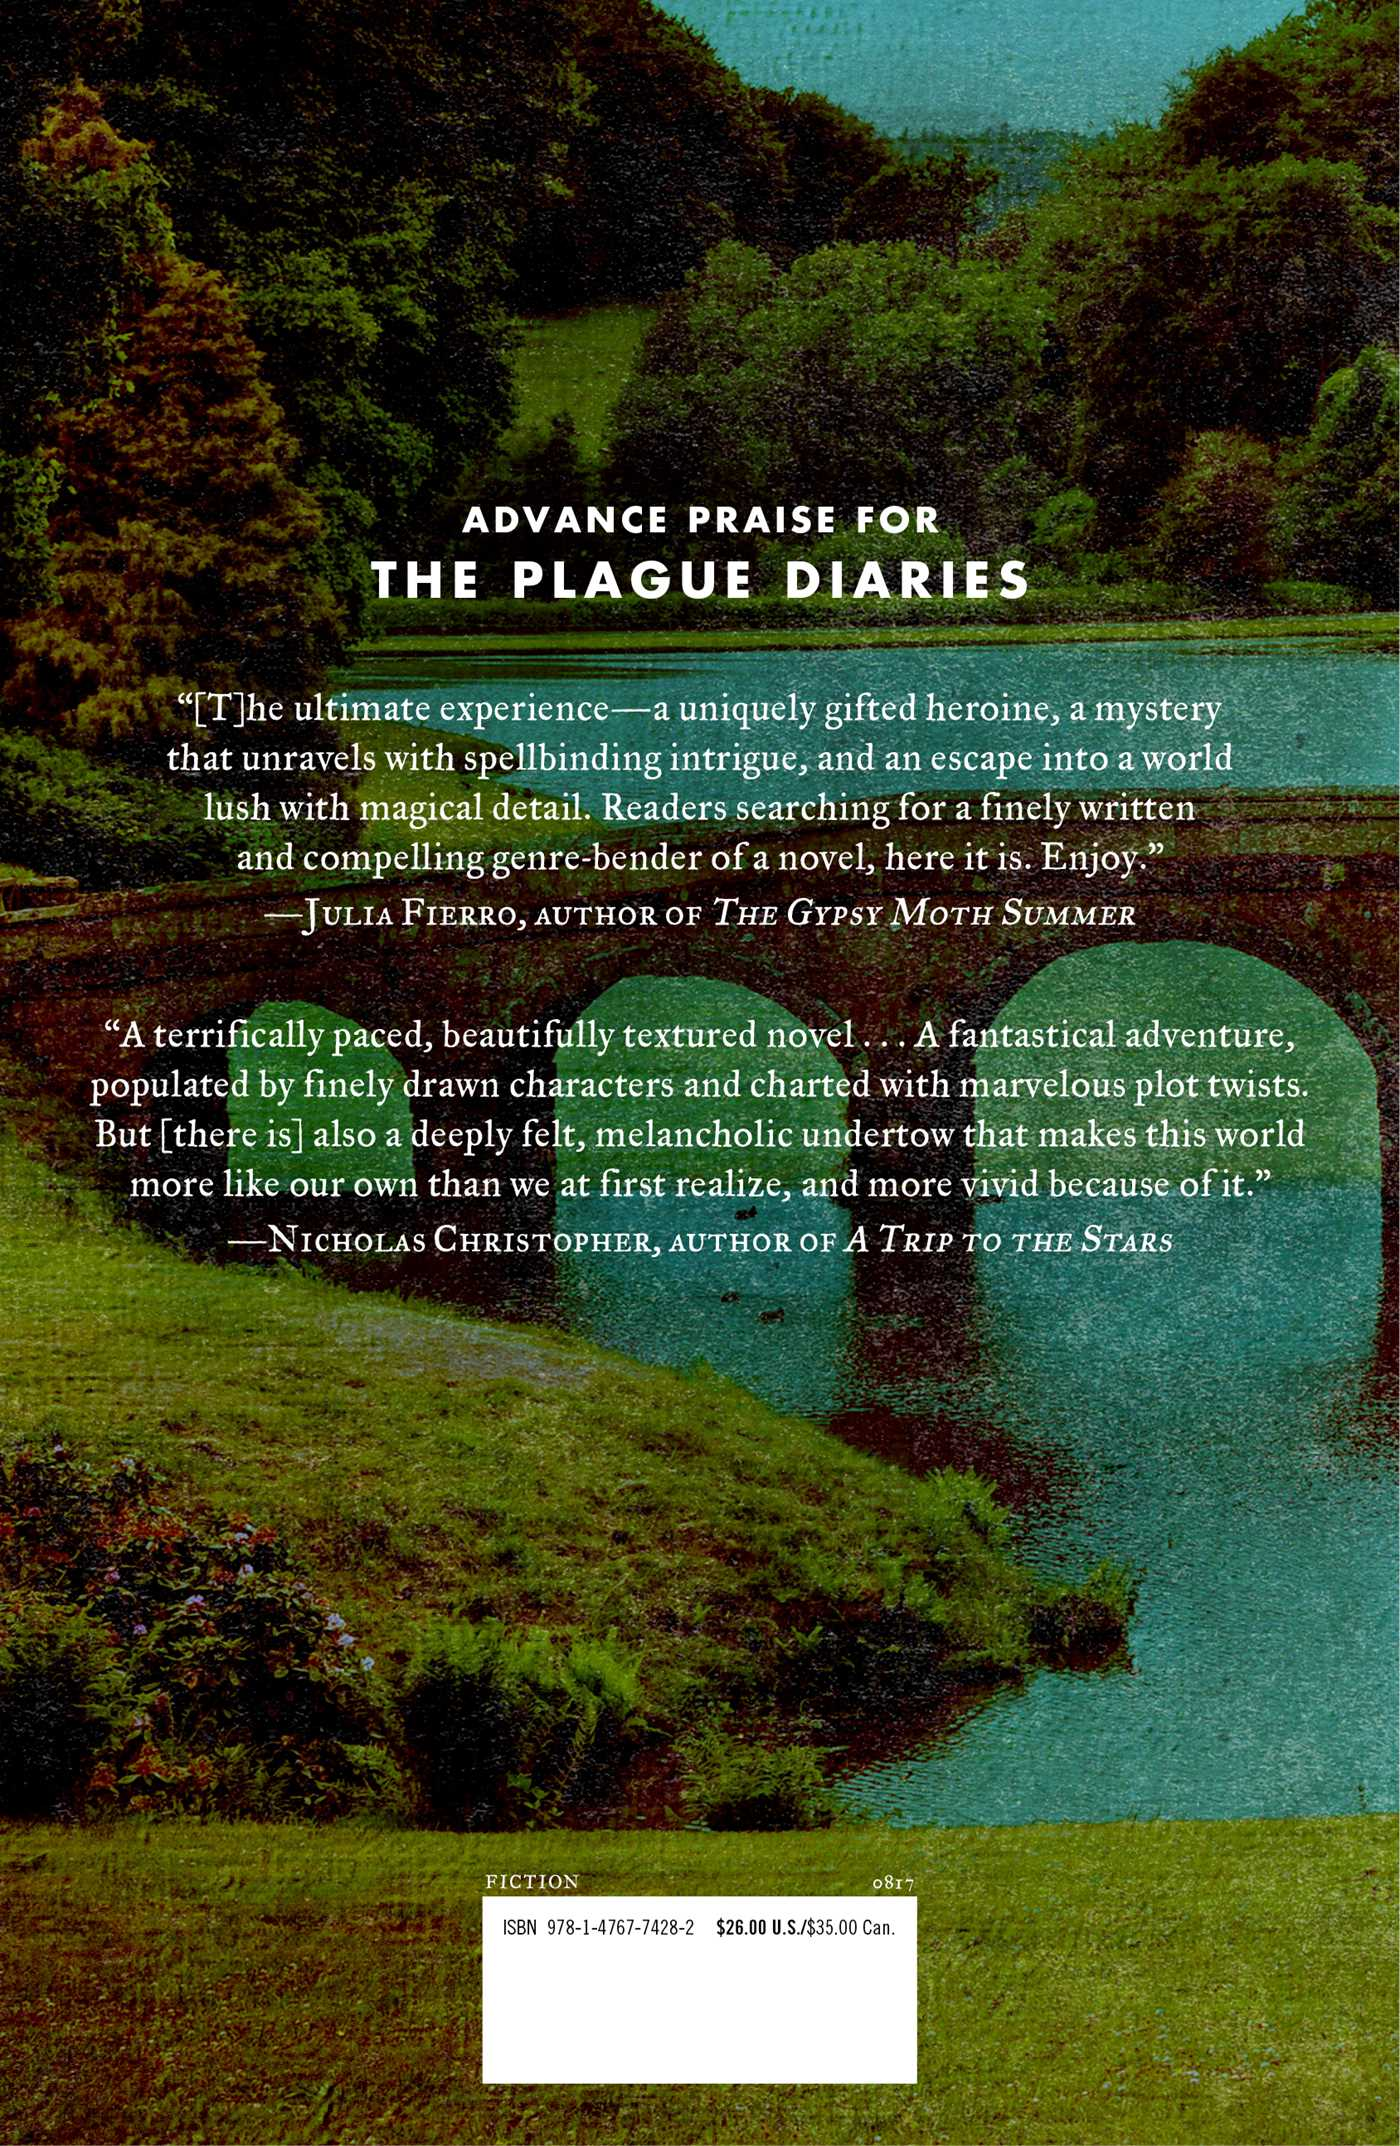 The plague diaries 9781476774282 hr back